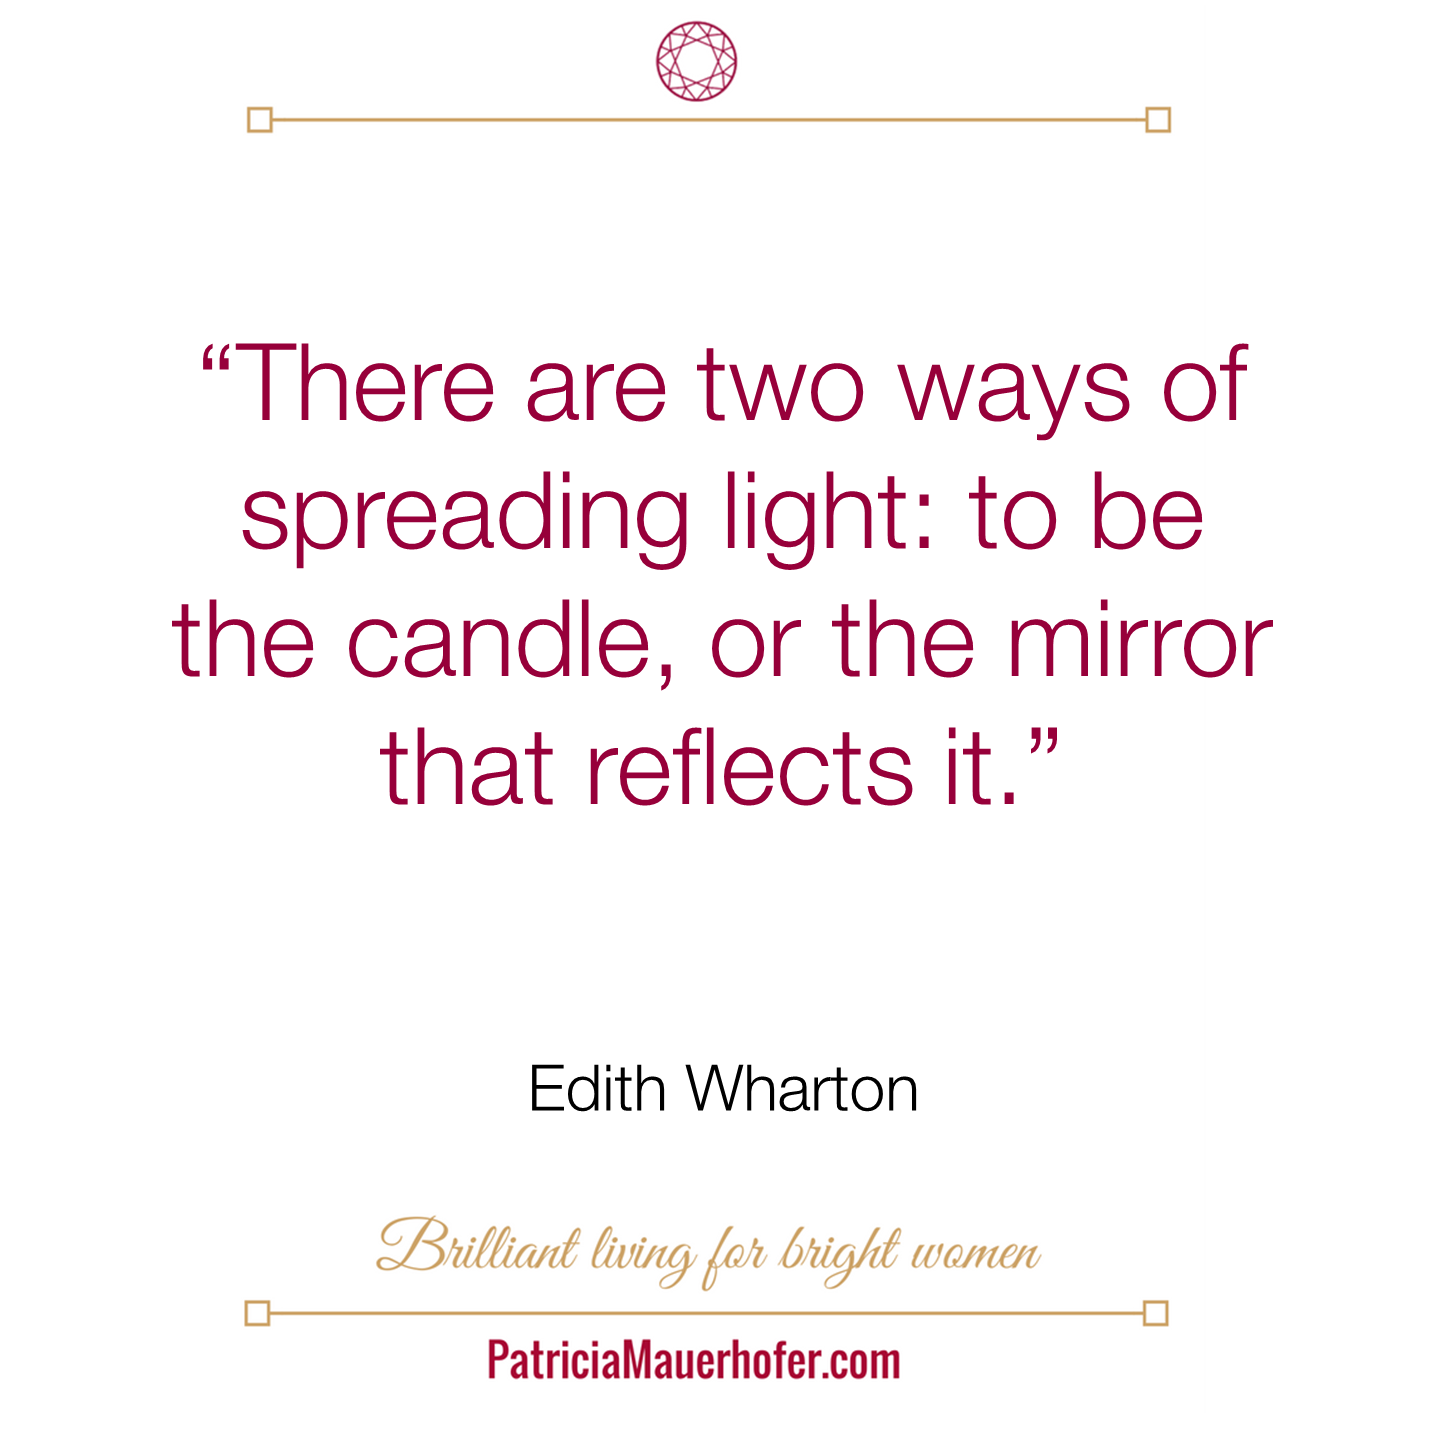 There are two ways of spreading light...